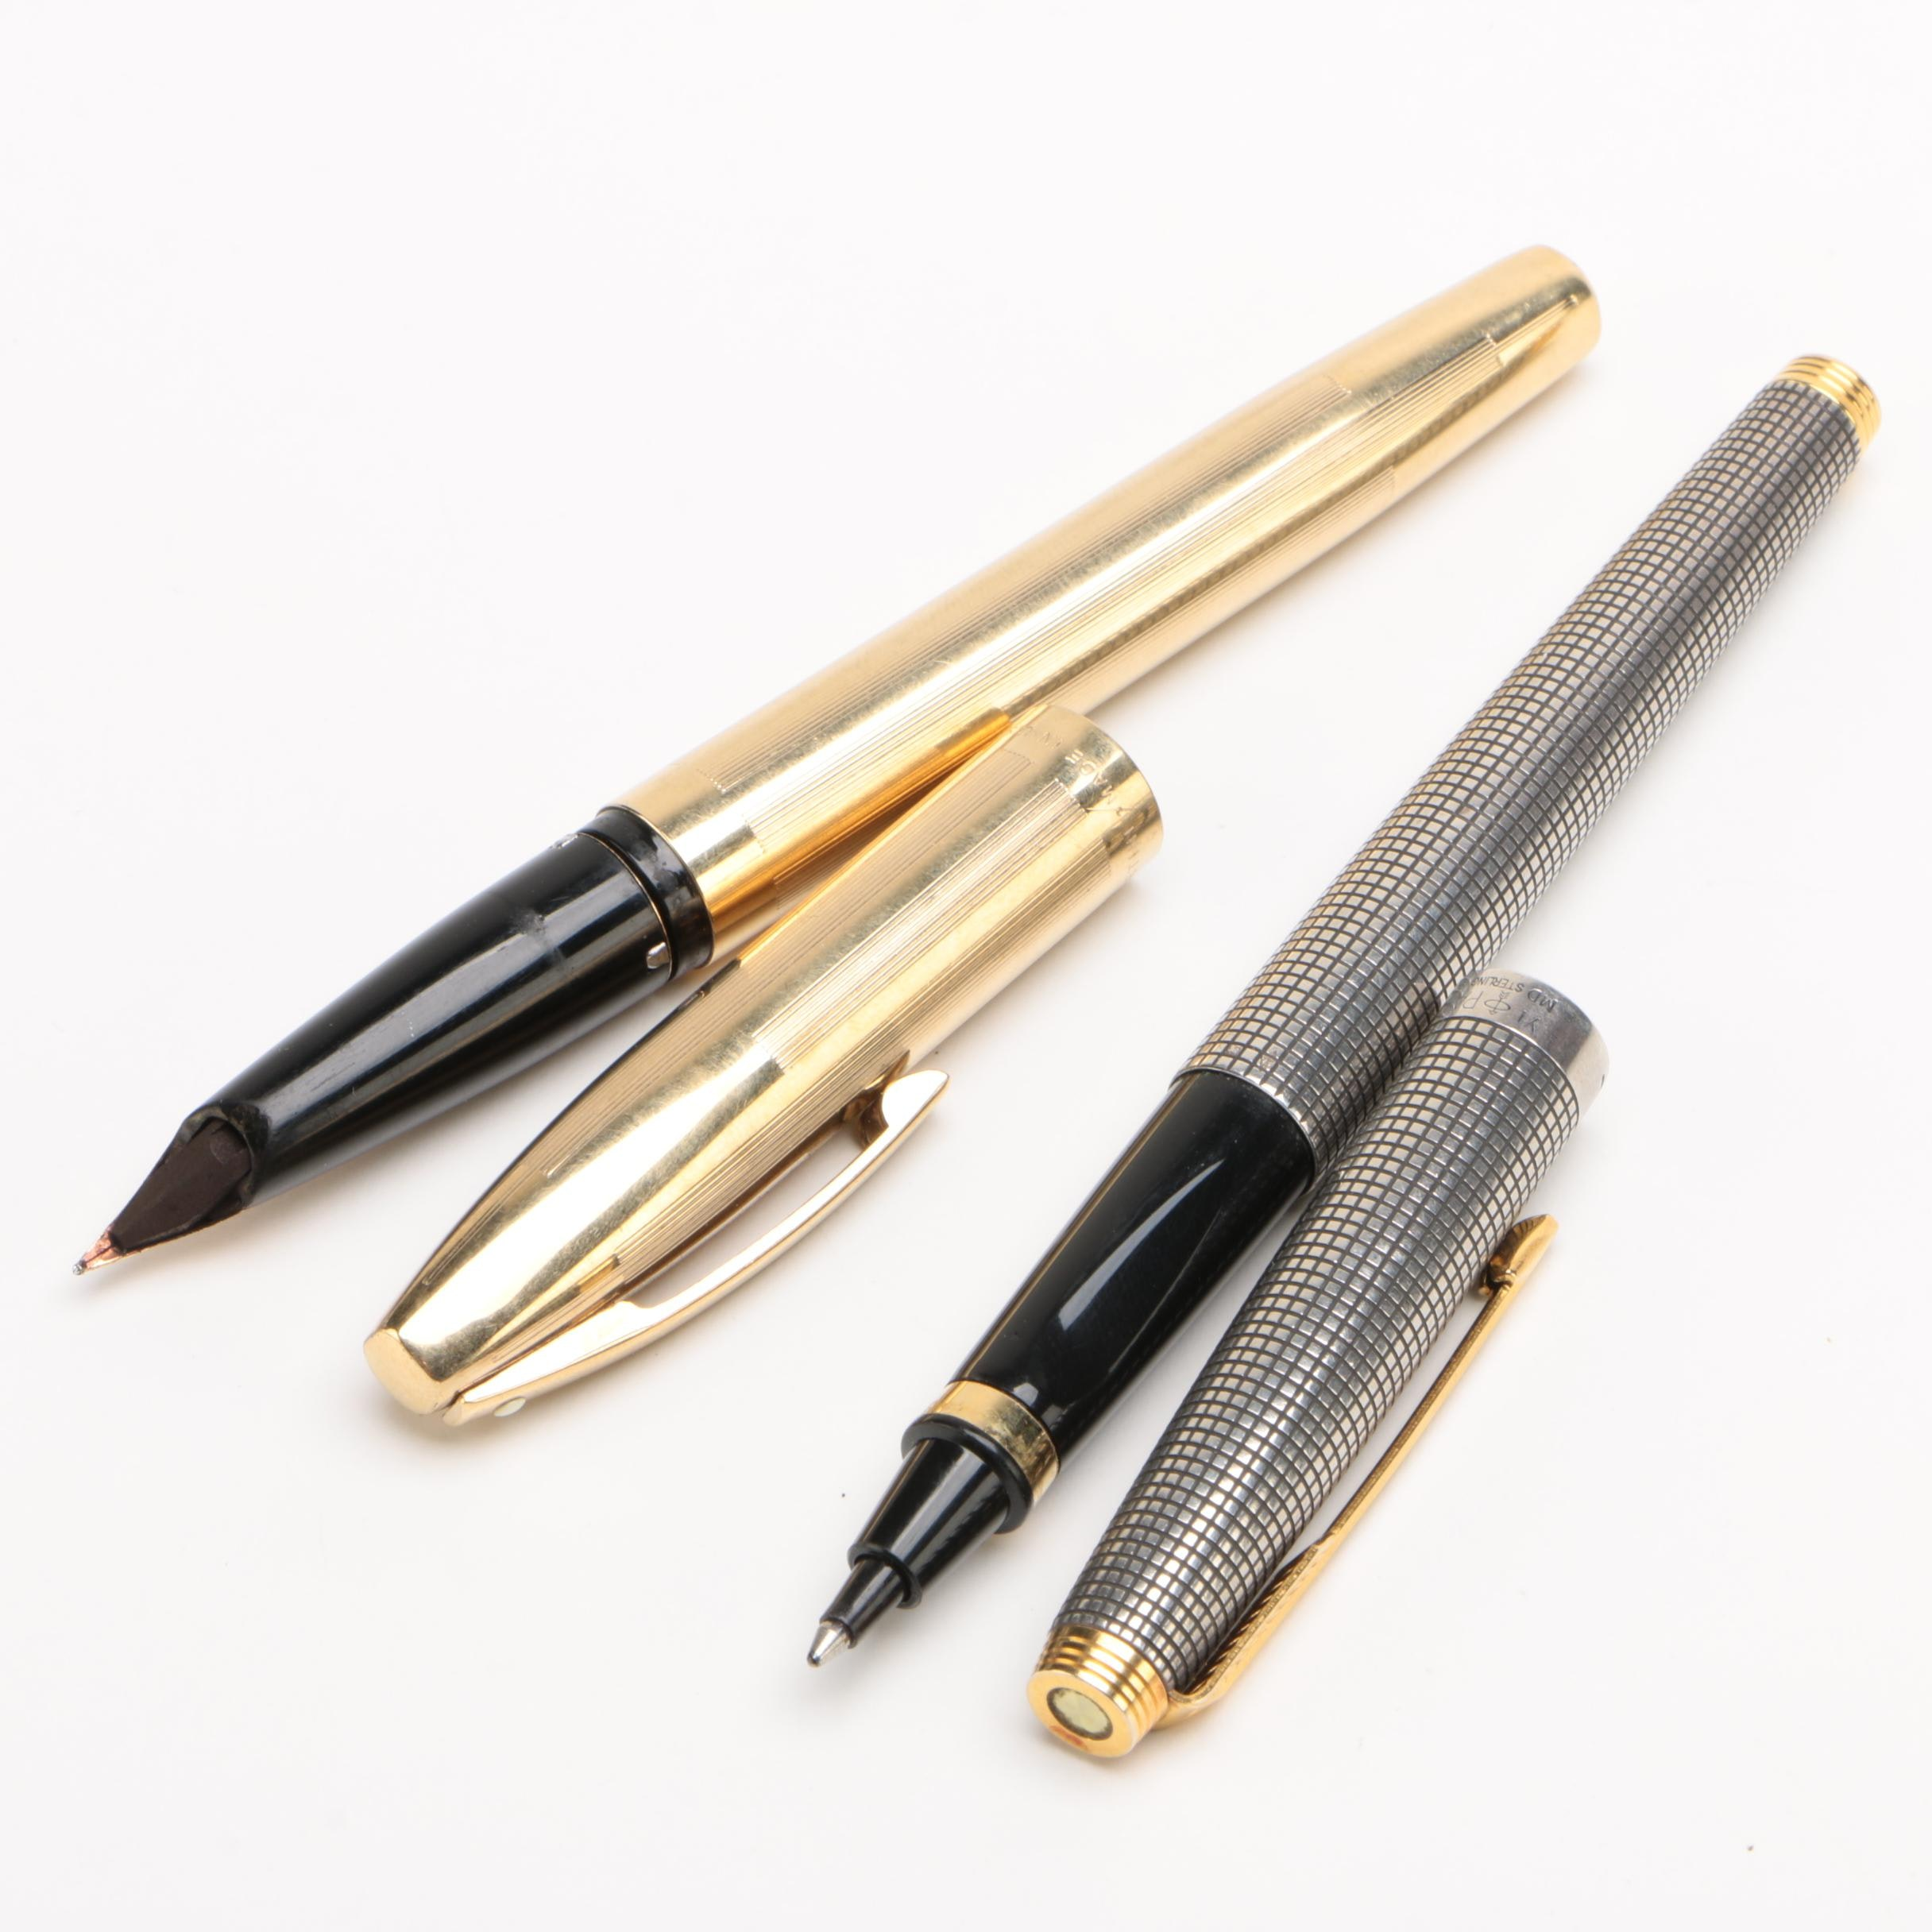 Sheaffer Lifetime Fountain Pen with 14K Gold Nib and French Parker Sterling Pen